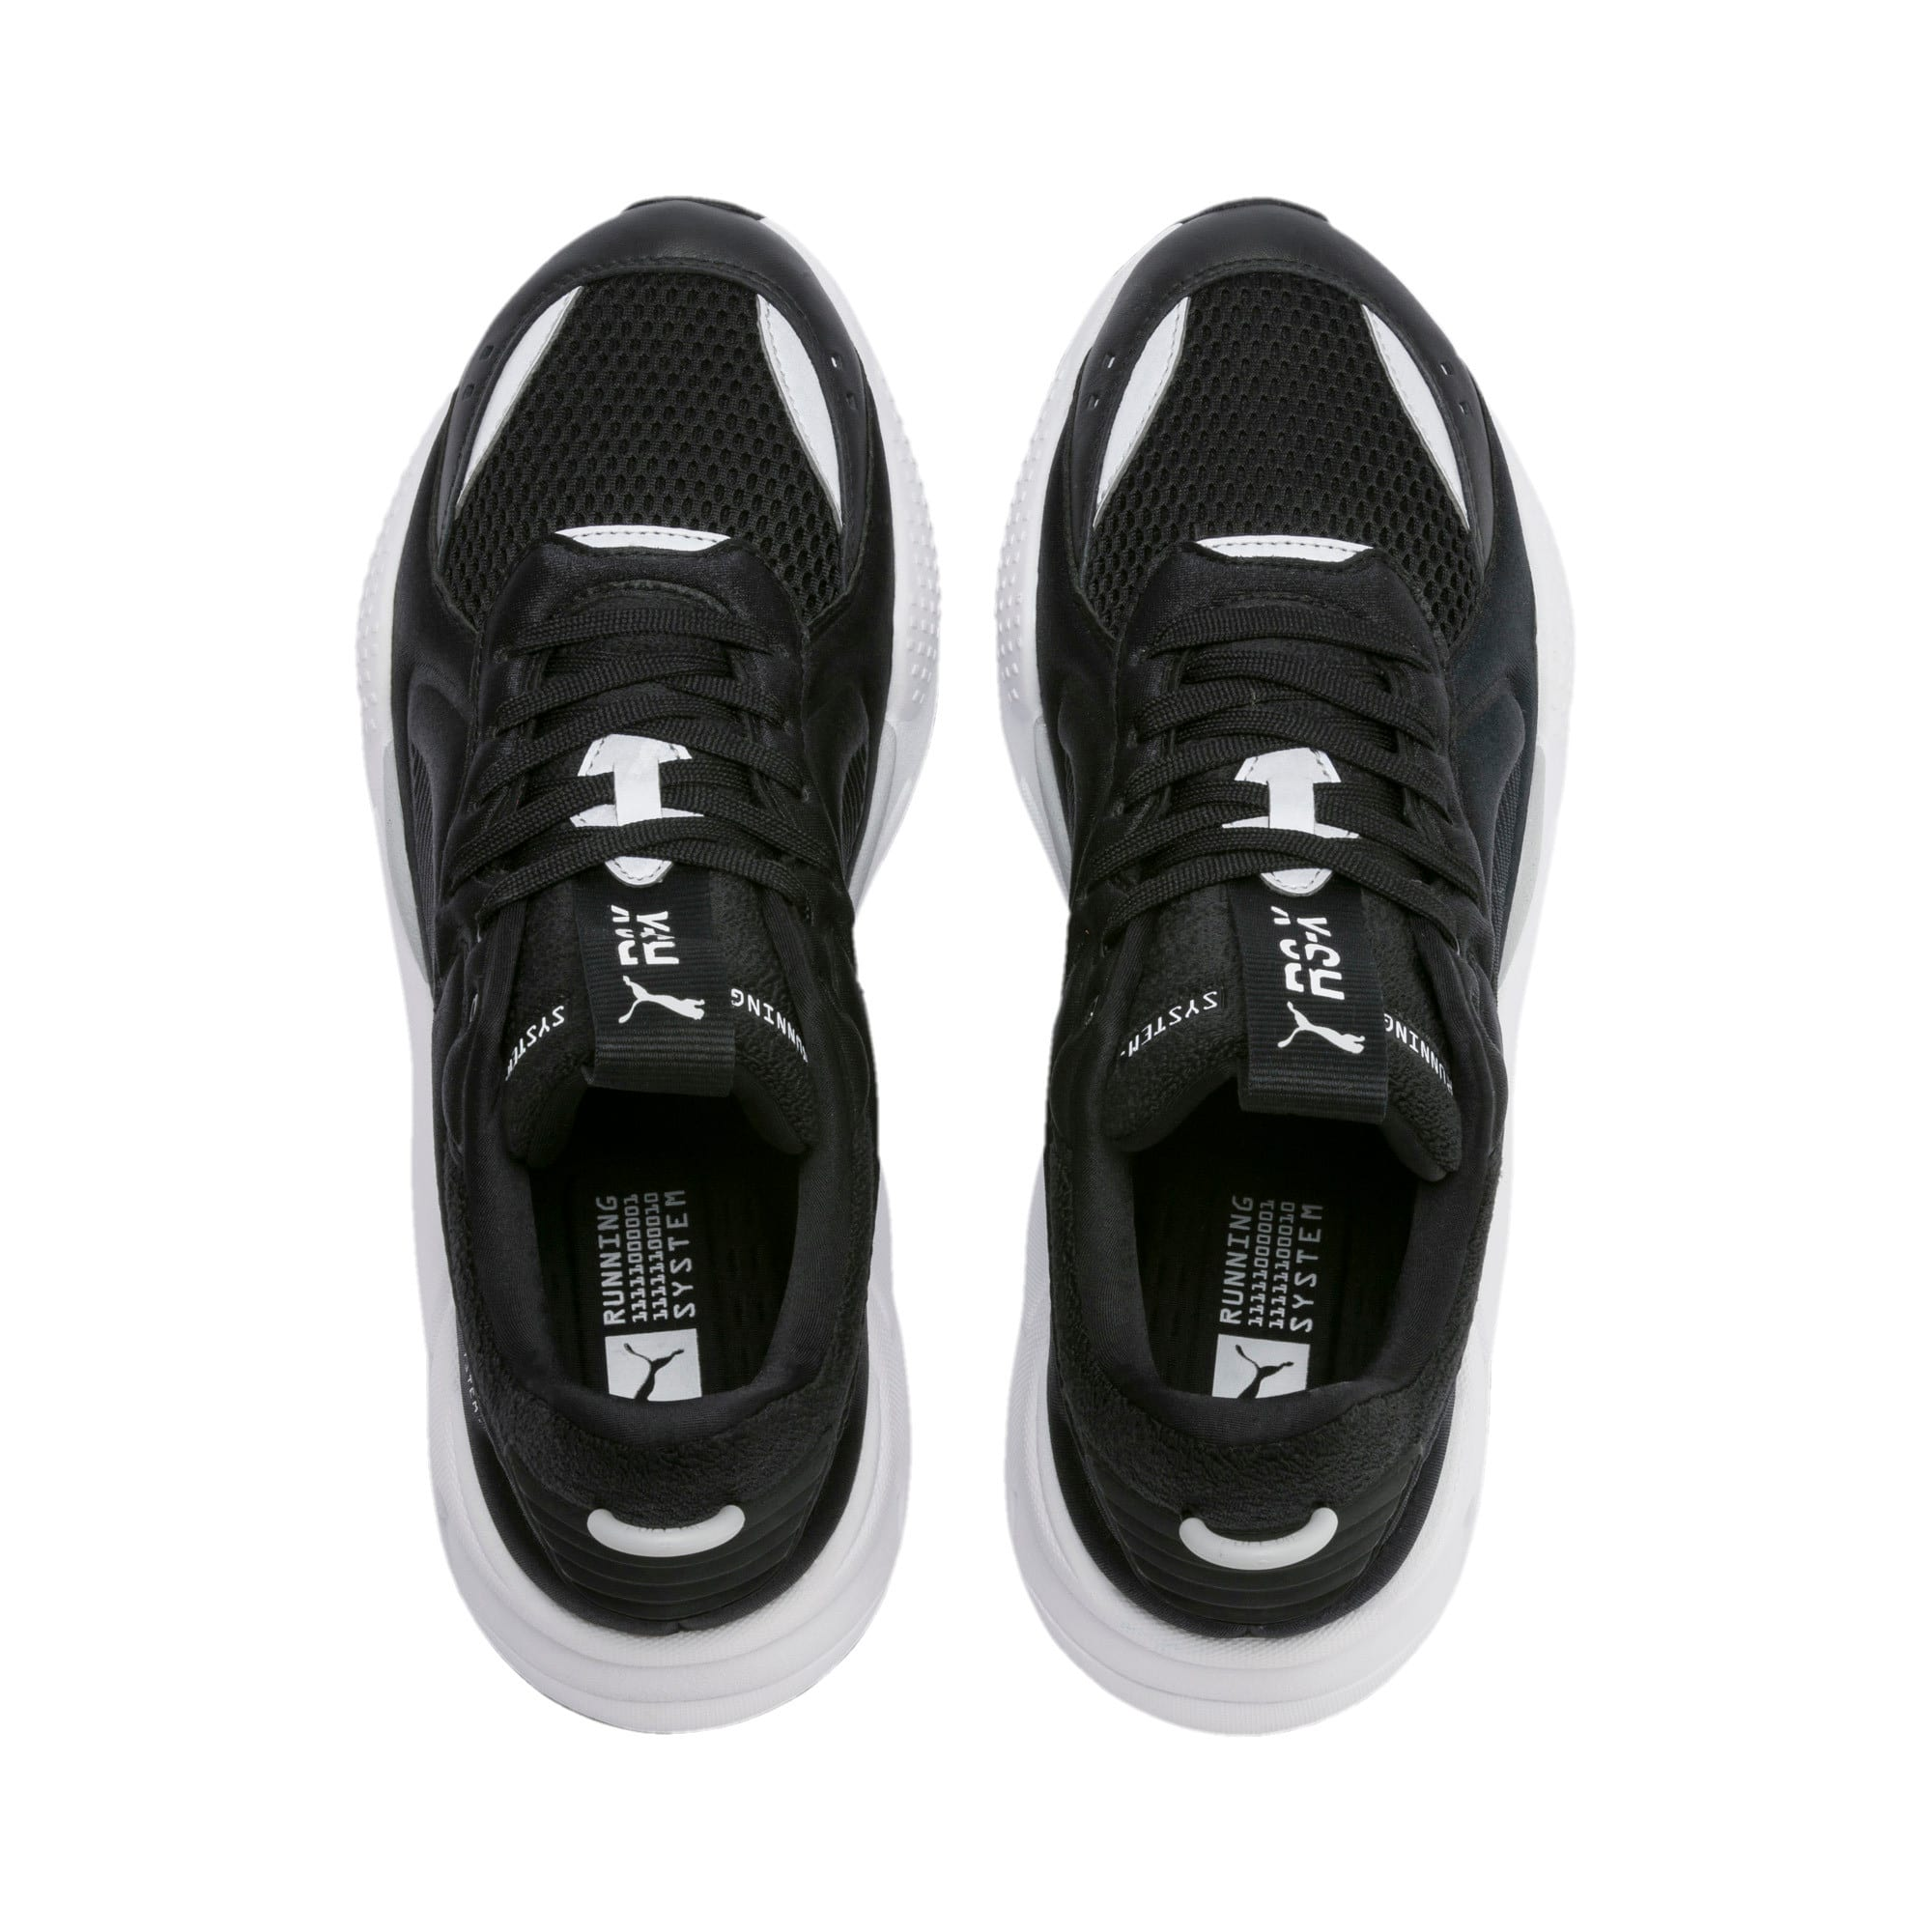 Thumbnail 7 of RS-X Softcase Trainers, Puma Black-Puma White, medium